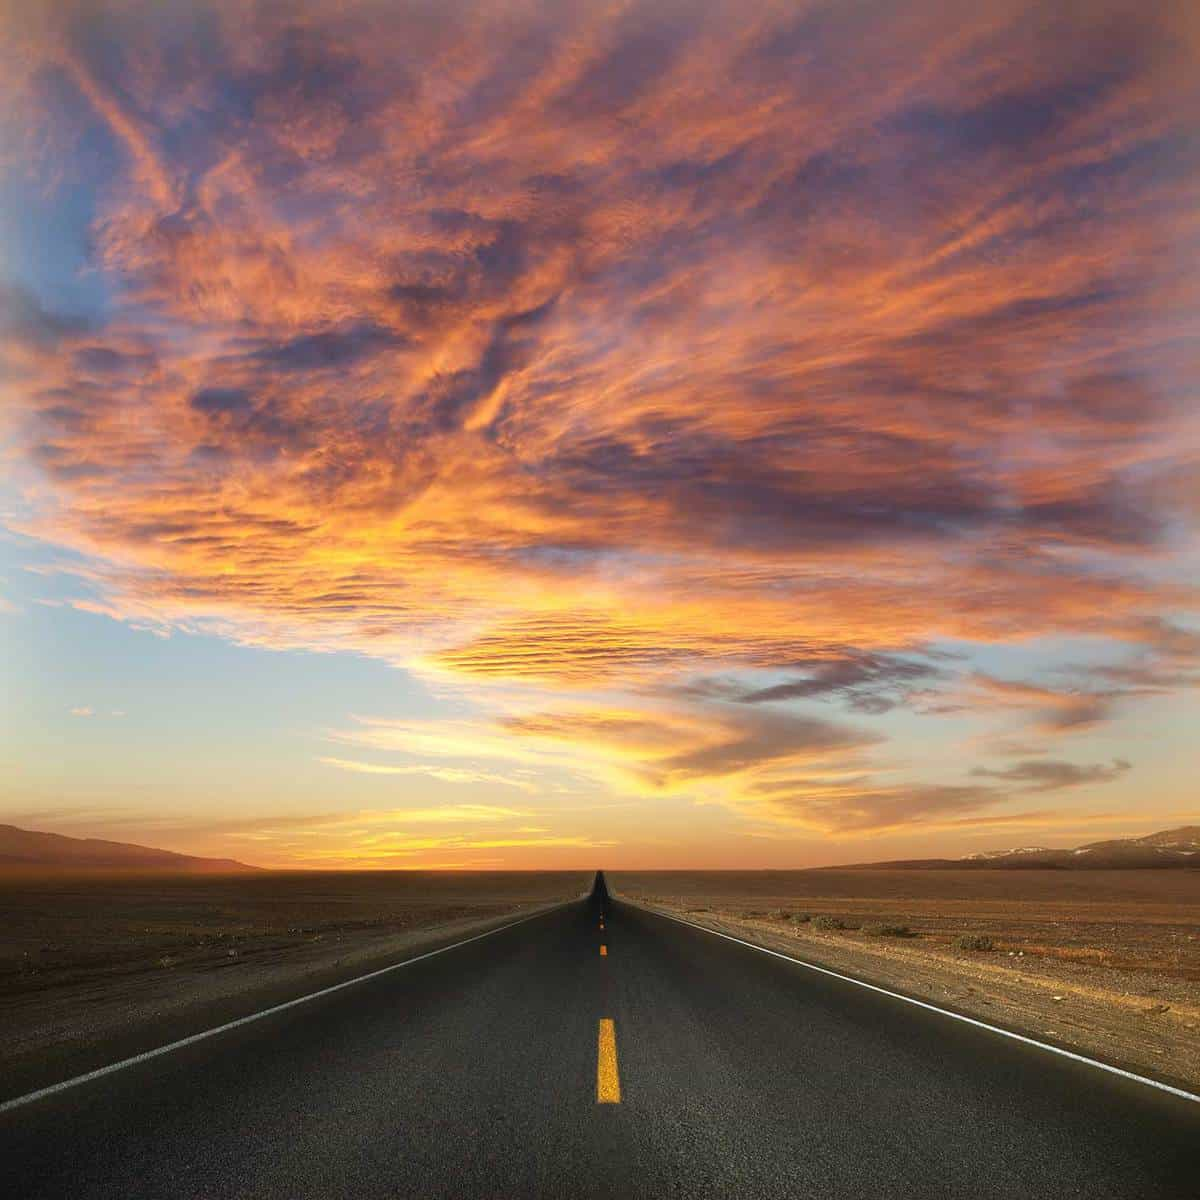 Road through Death Valley during sunset